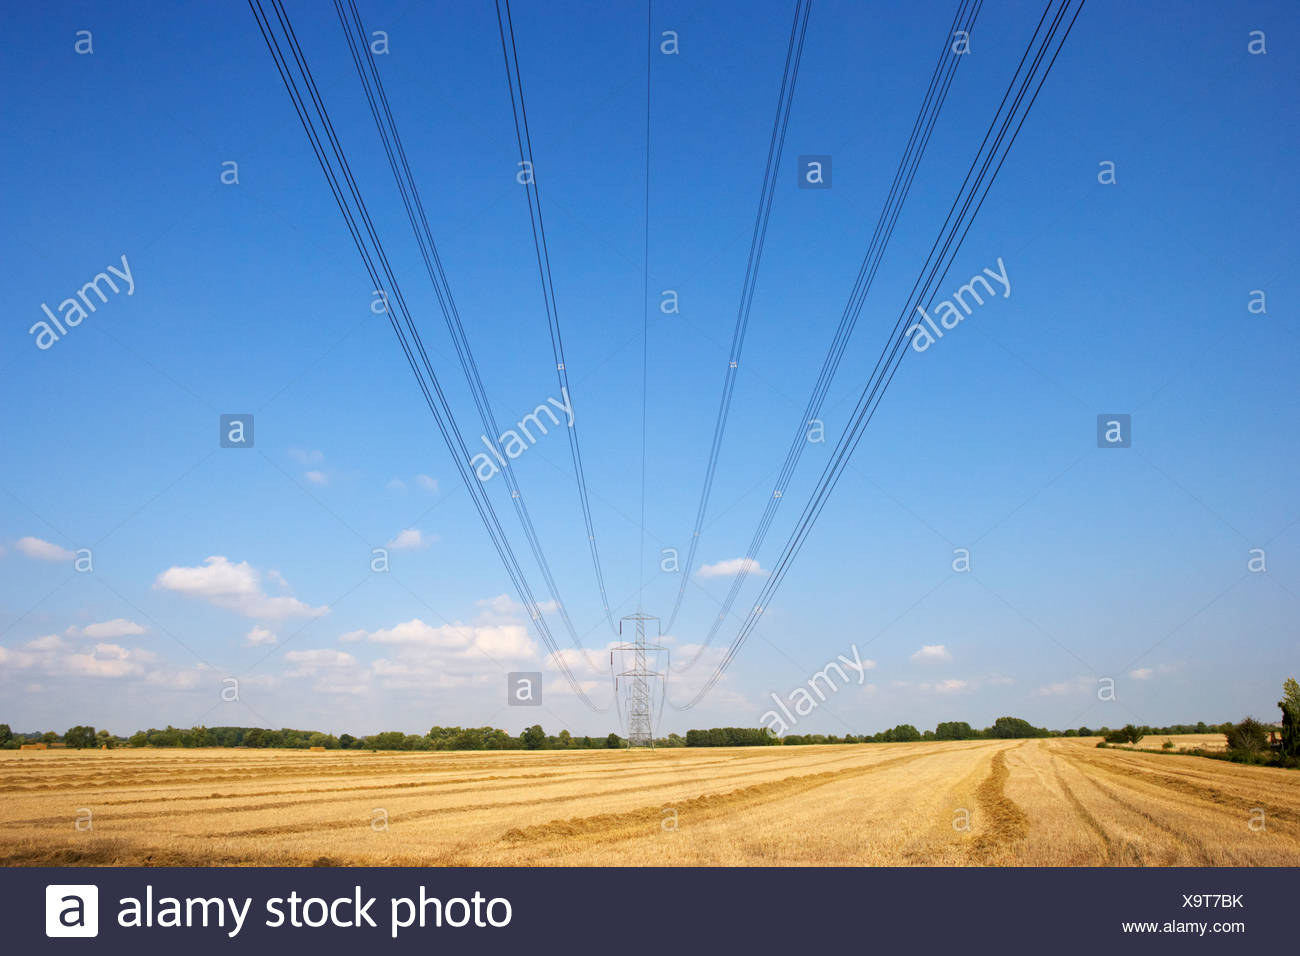 Electricity pylon and lines in countryside - Stock Image